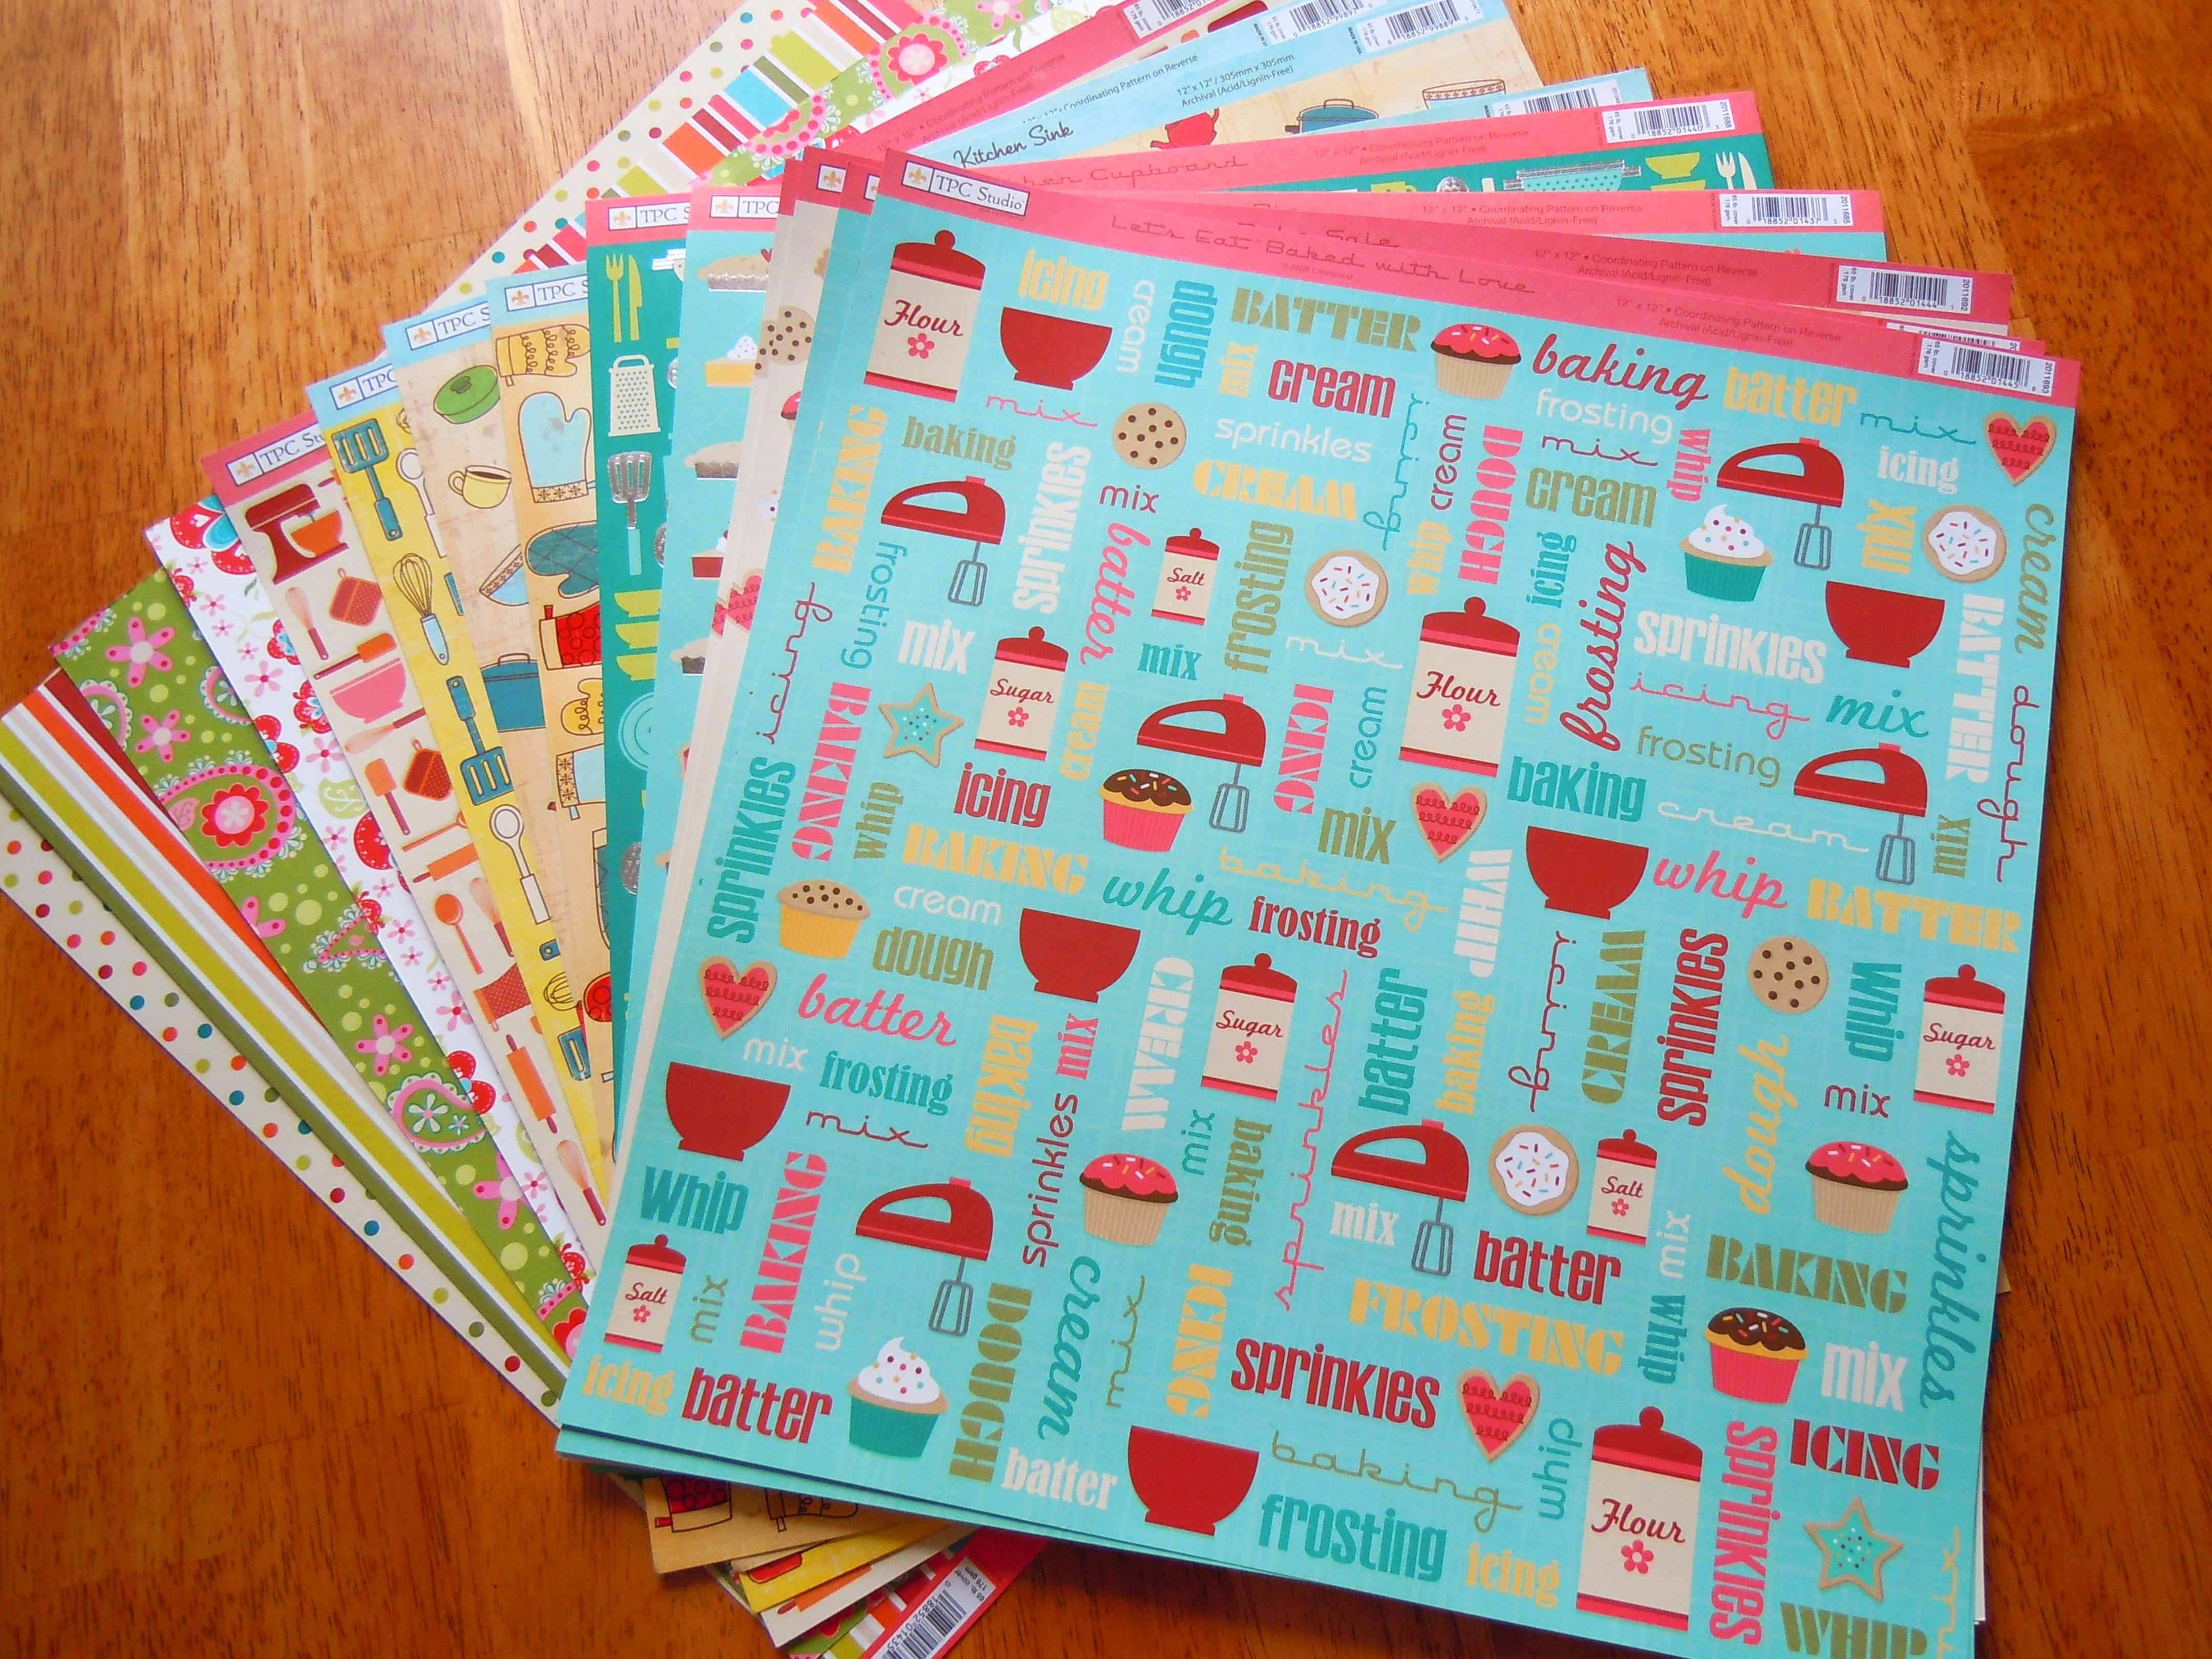 How to refill scrapbook pages - I Ll Be Creating A Special Cookie And Baking Scrapbook Focused On The Cookies Muffins And Baked Goods I Ve Made And It Ll Be One Of Those Continuing